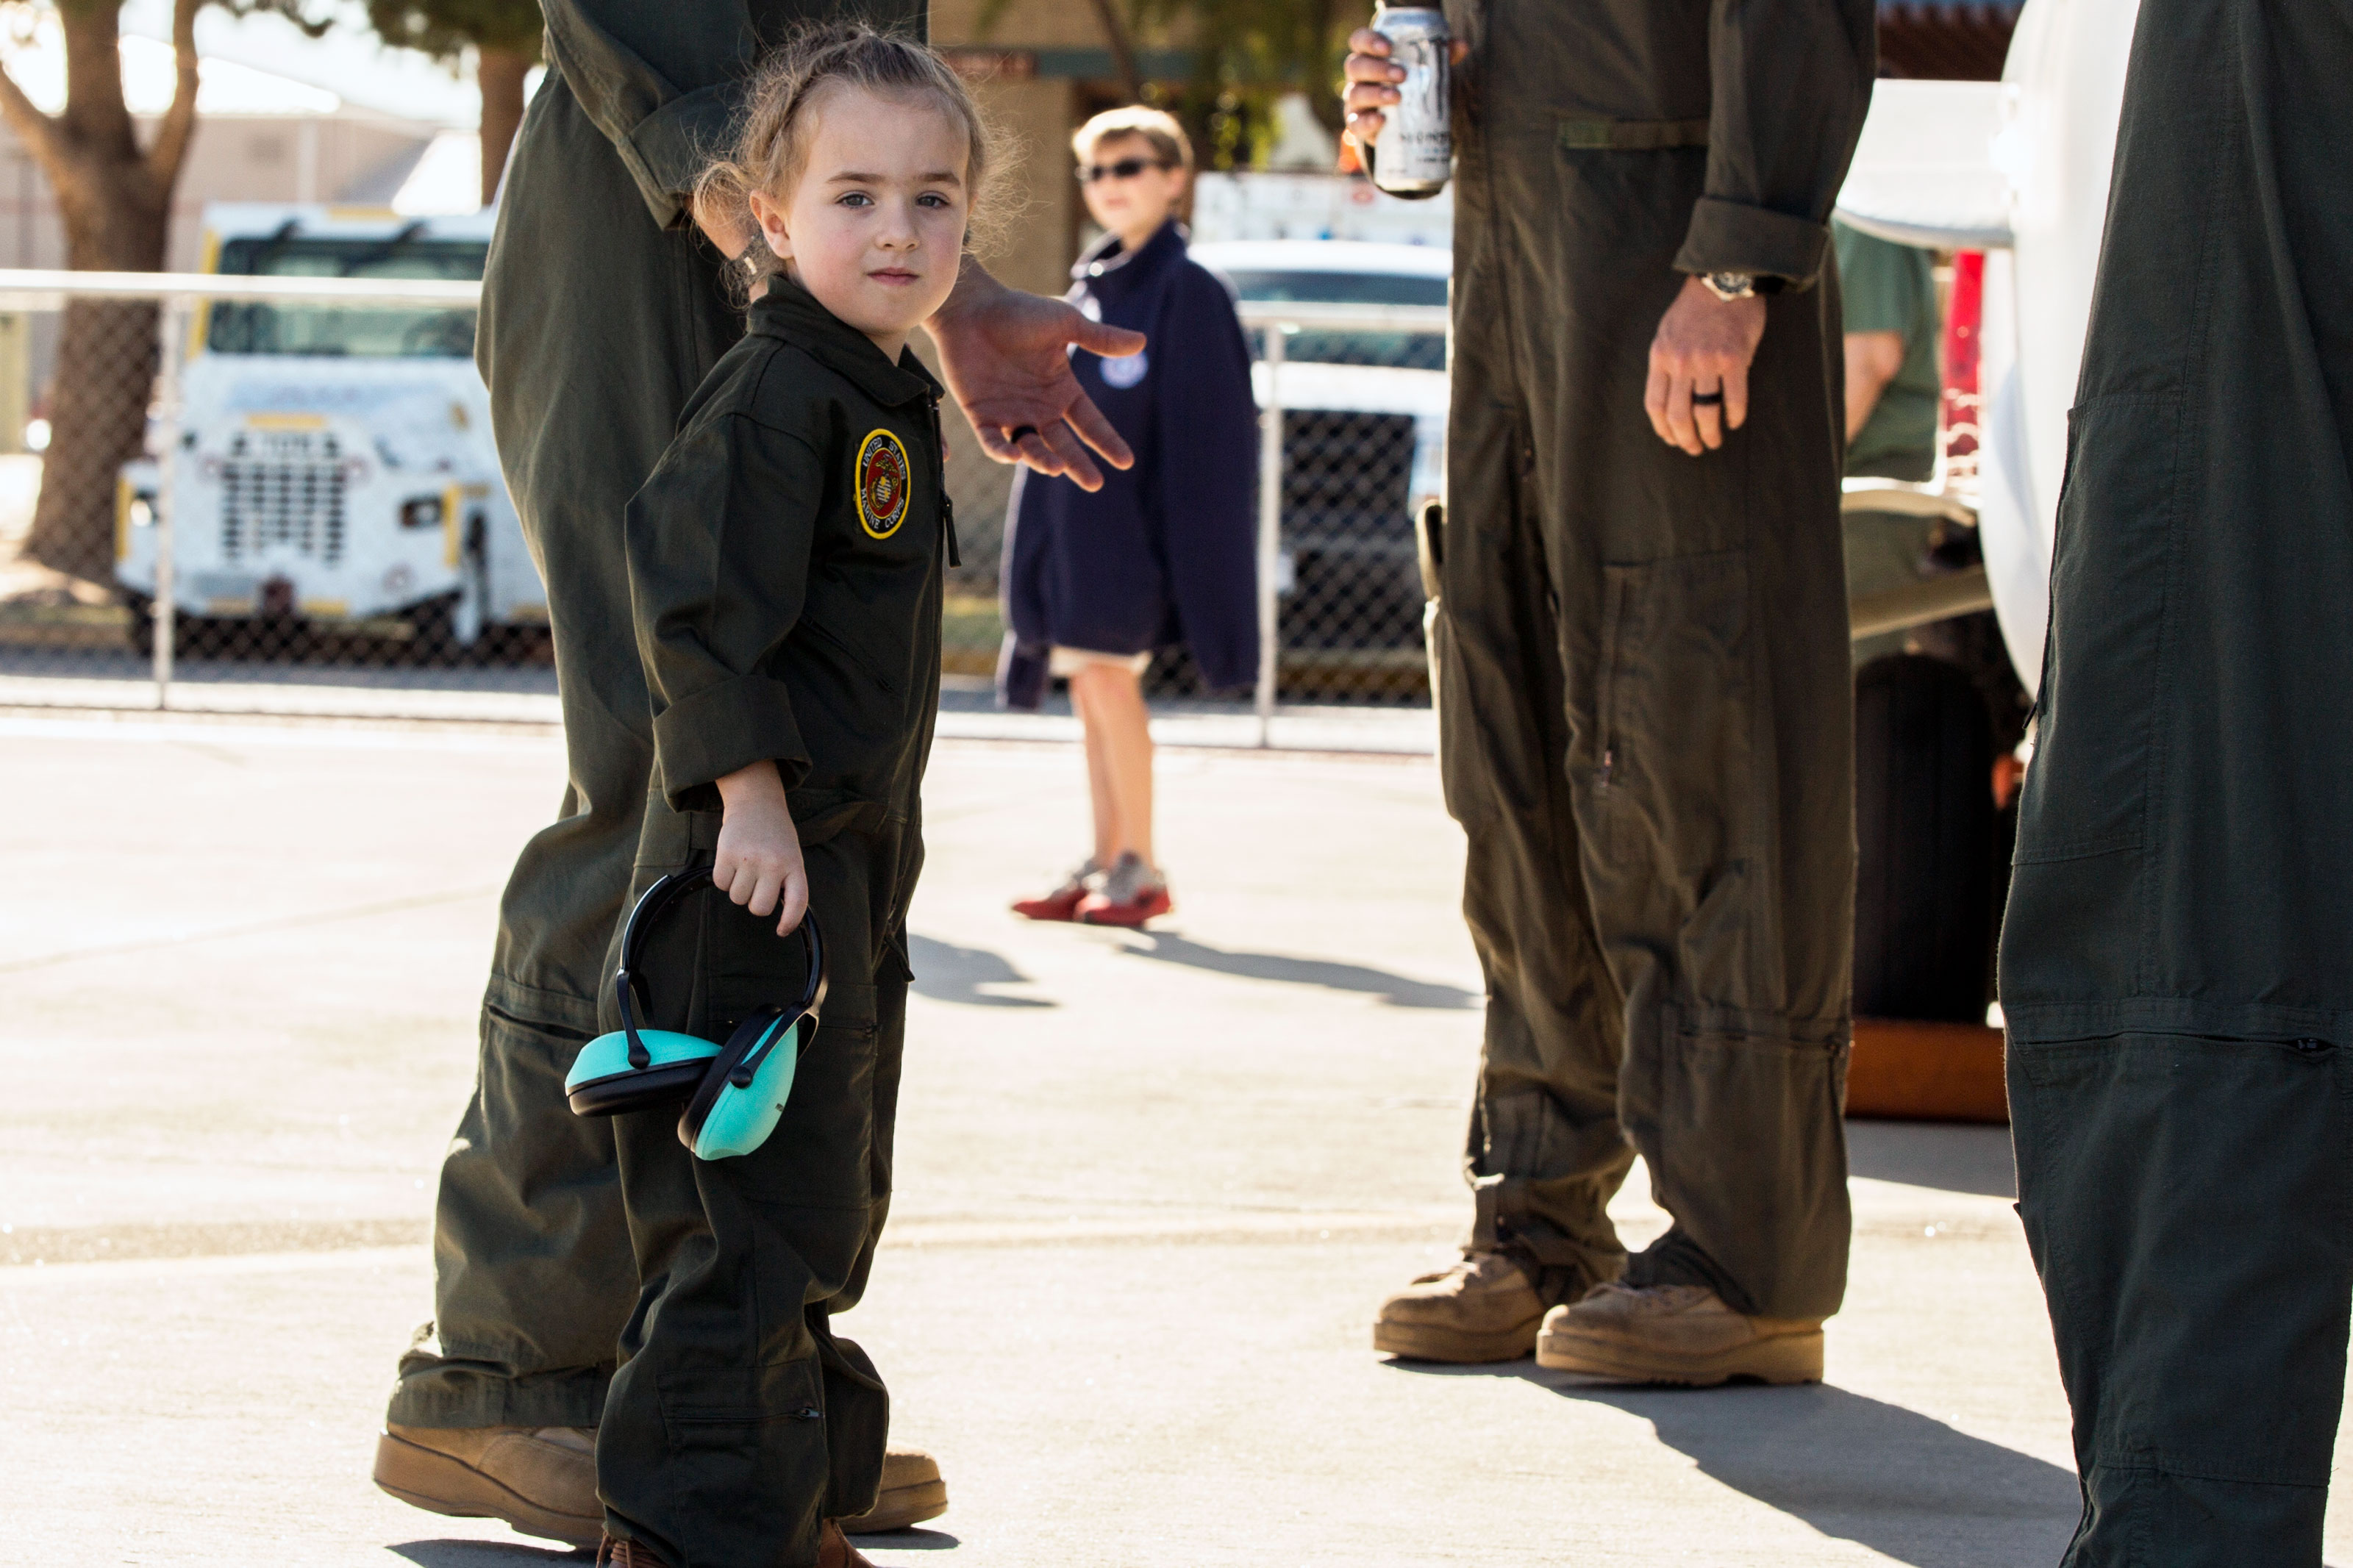 Guests observe the static displays at the 2018 Yuma Airshow hosted by Marine Corps Air Station Yuma, Ariz. (U.S. Marine Corps/Sabrina Candiaflores)